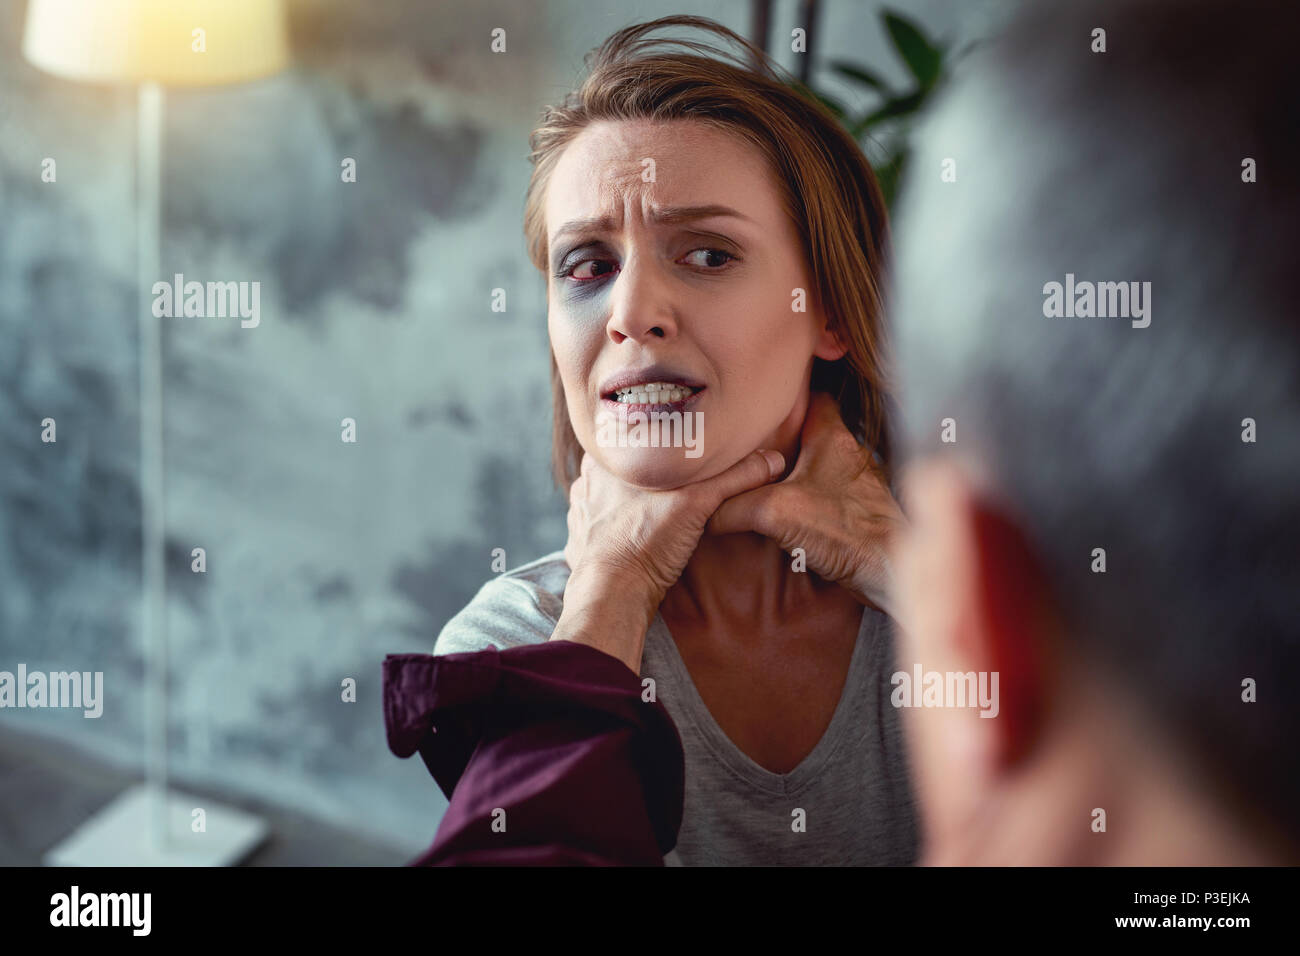 Young woman with blue eye and blood on lip - Stock Image